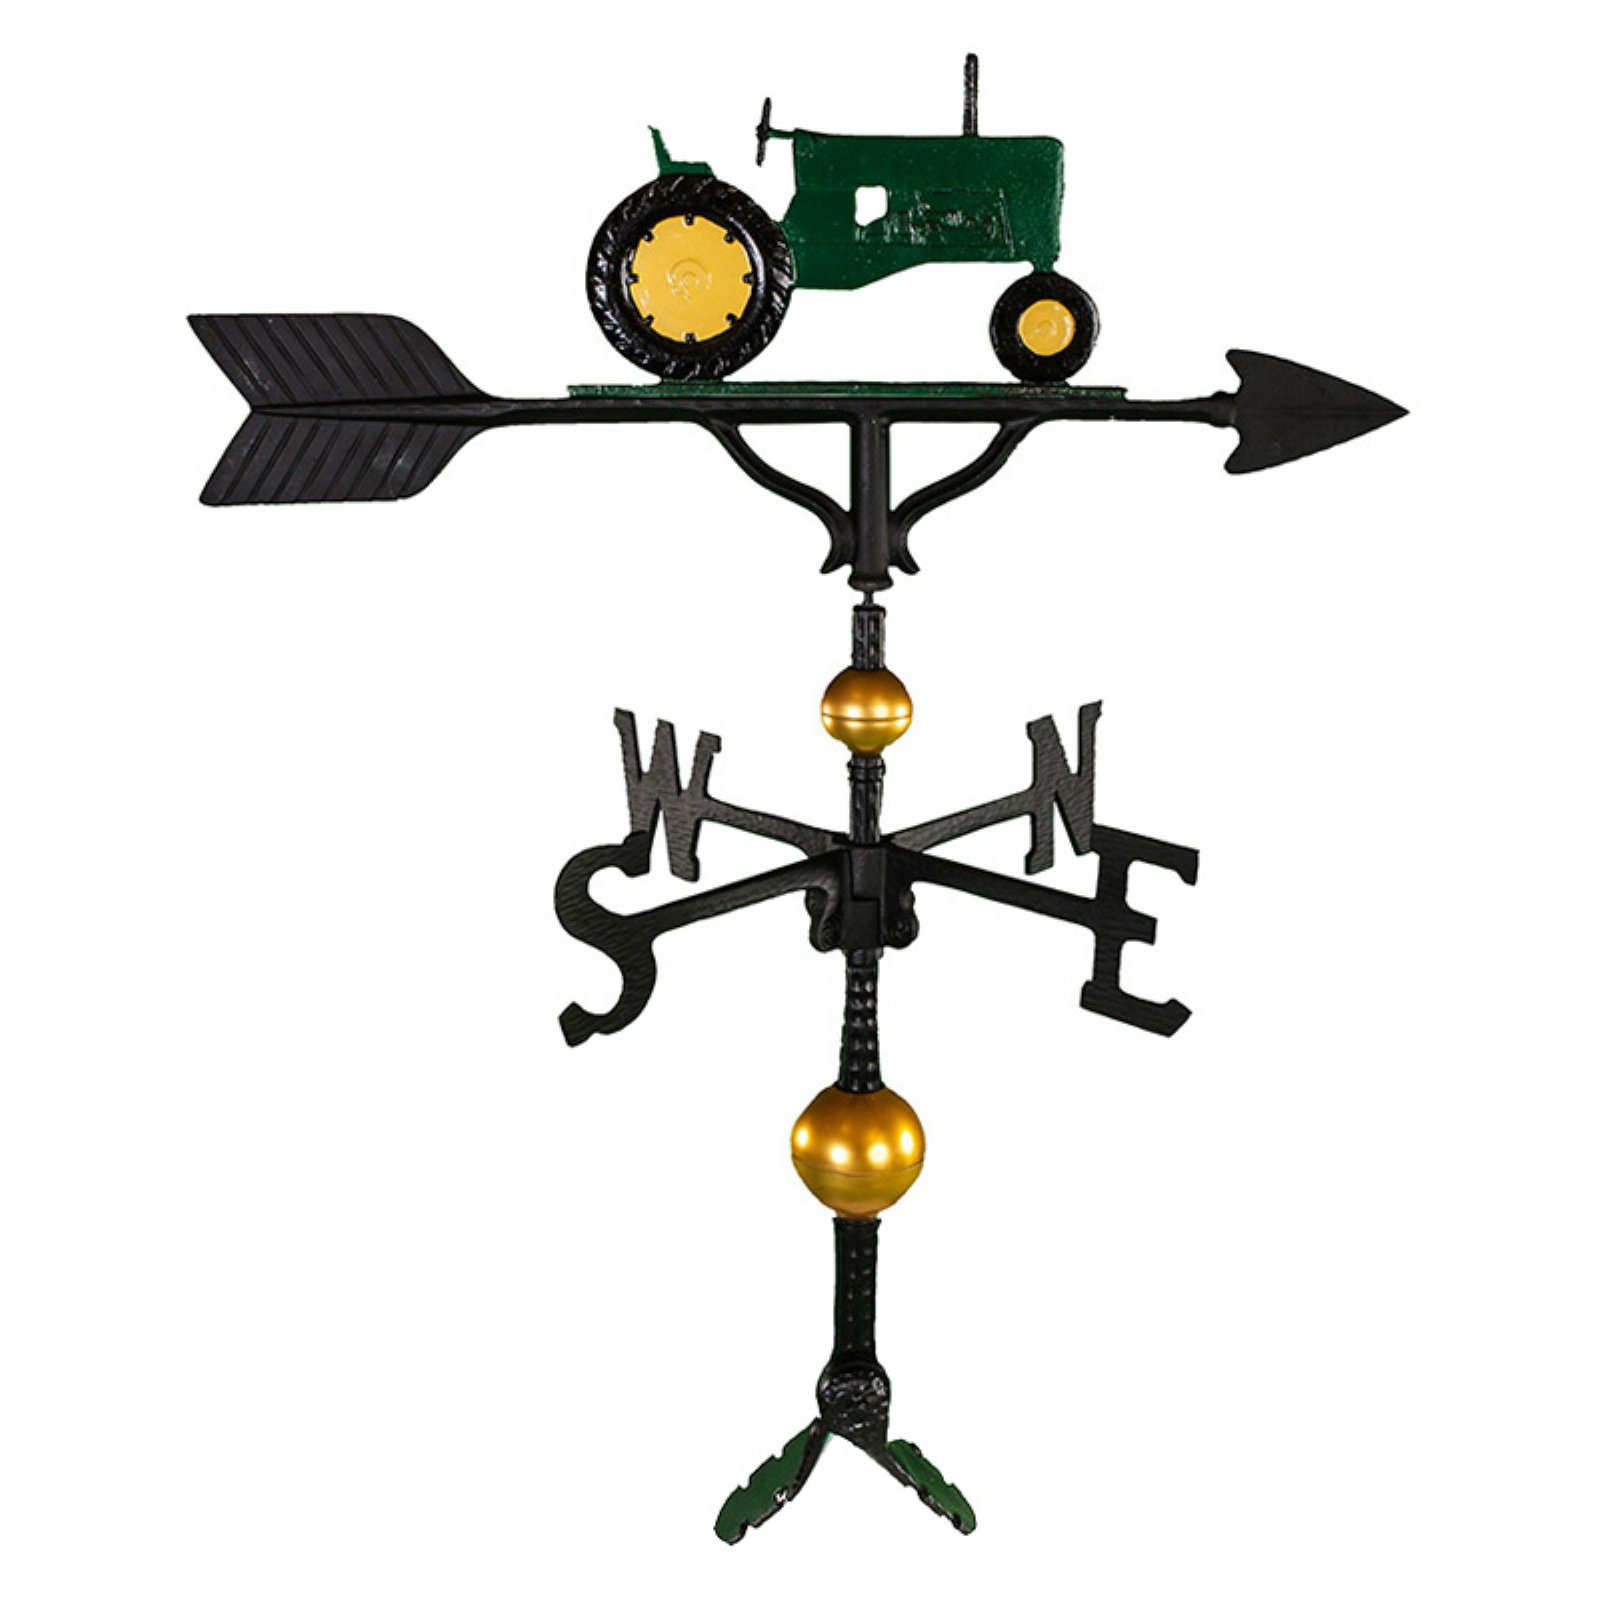 Deluxe Green Tractor Weathervane 32 in. by Brand New